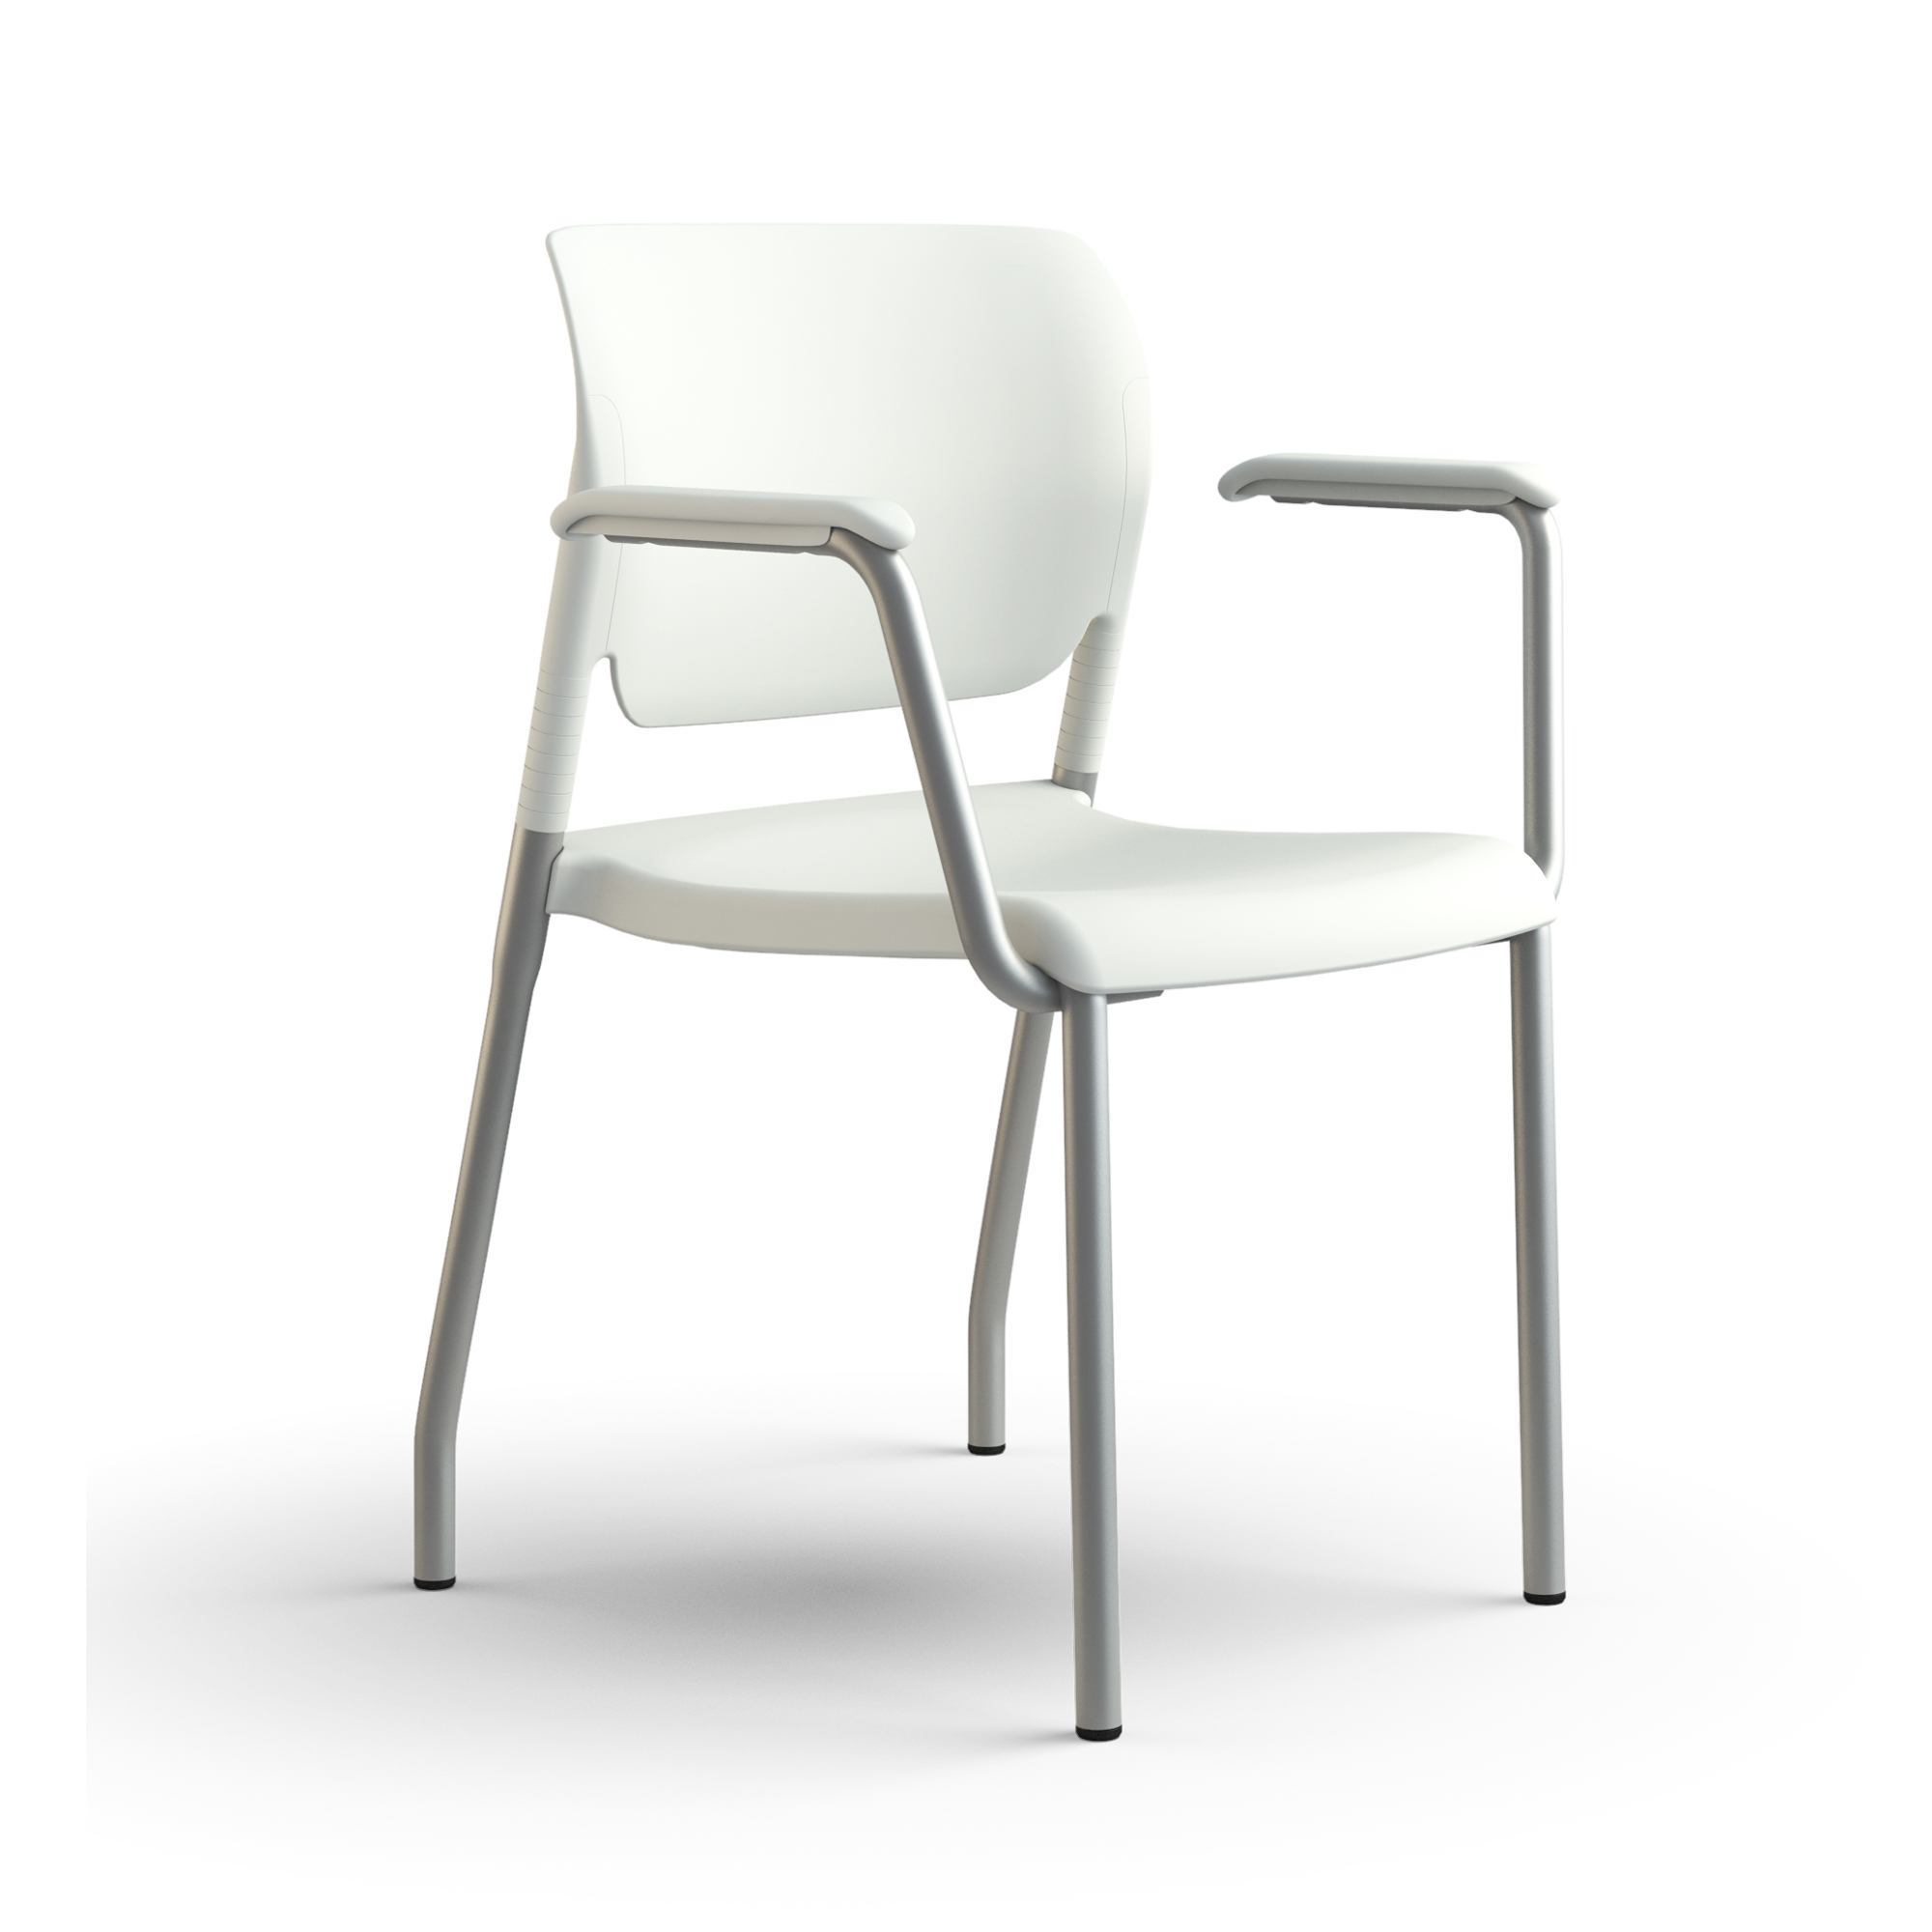 inflex multipurpose chair frost 3qfront gallery-2